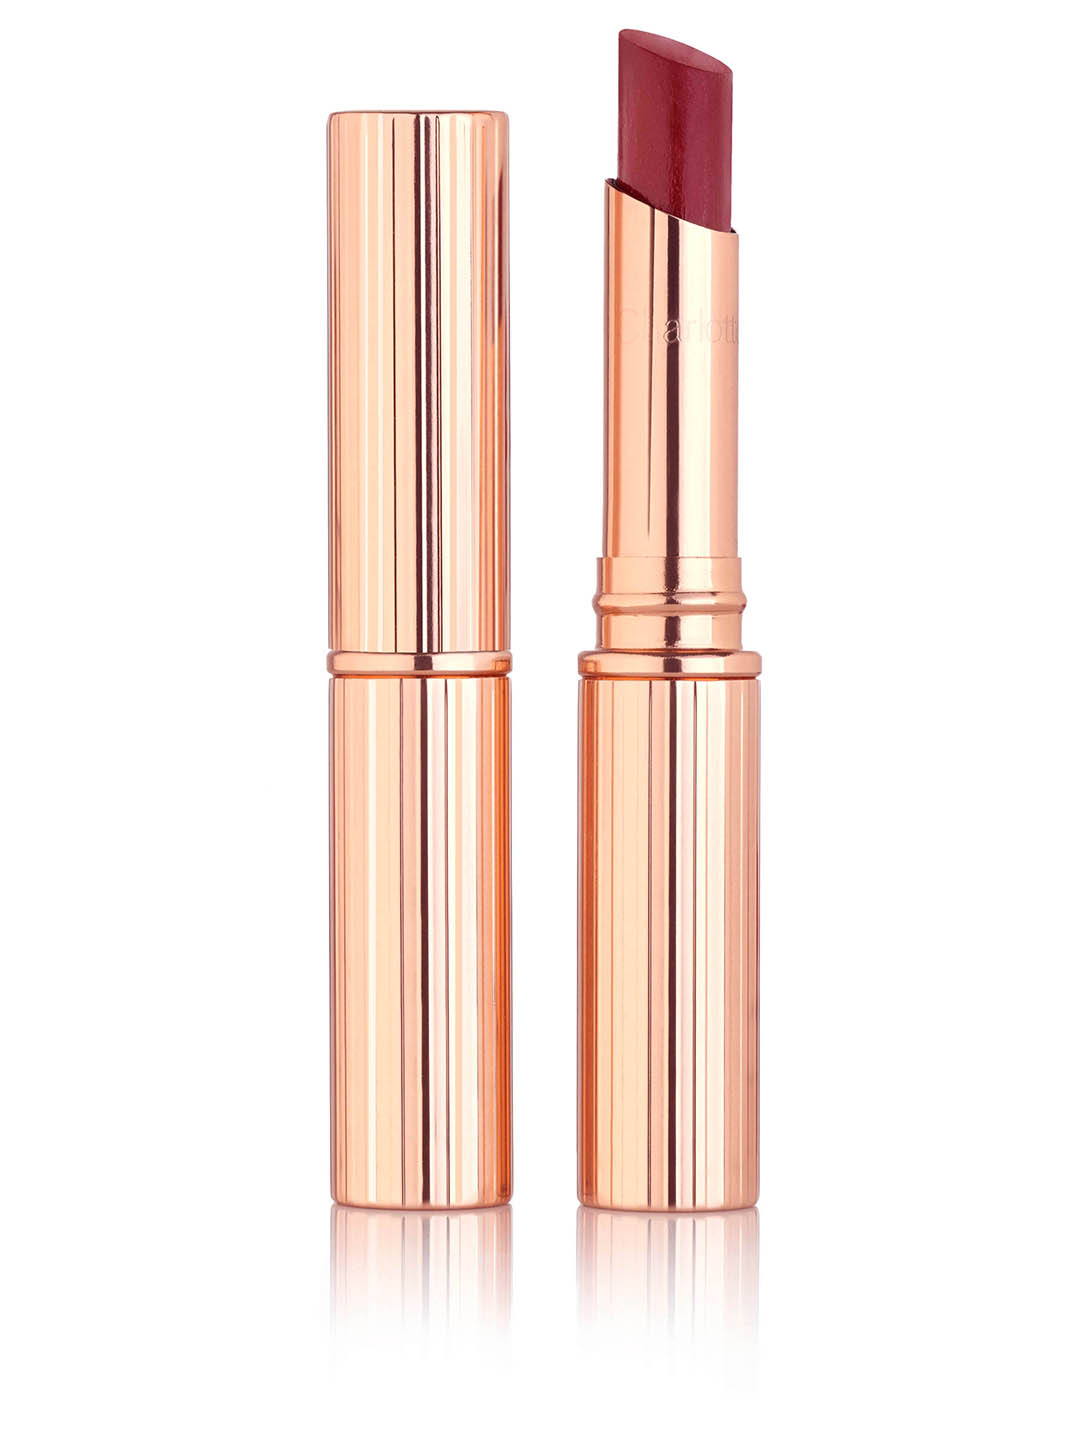 CHARLOTTE TILBURY Superstar Lips Holiday Glossy Lipstick Beauty Pink